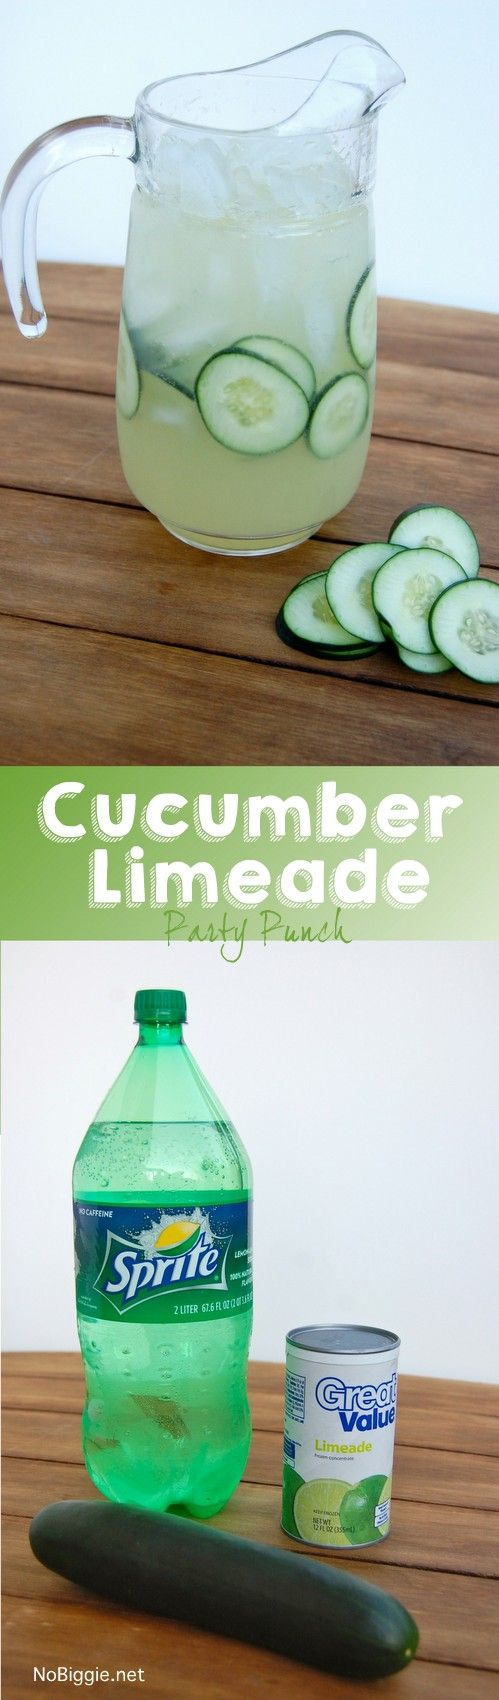 cucumber limeade party punch - this punch is so easy and so good! | NoBiggie.net